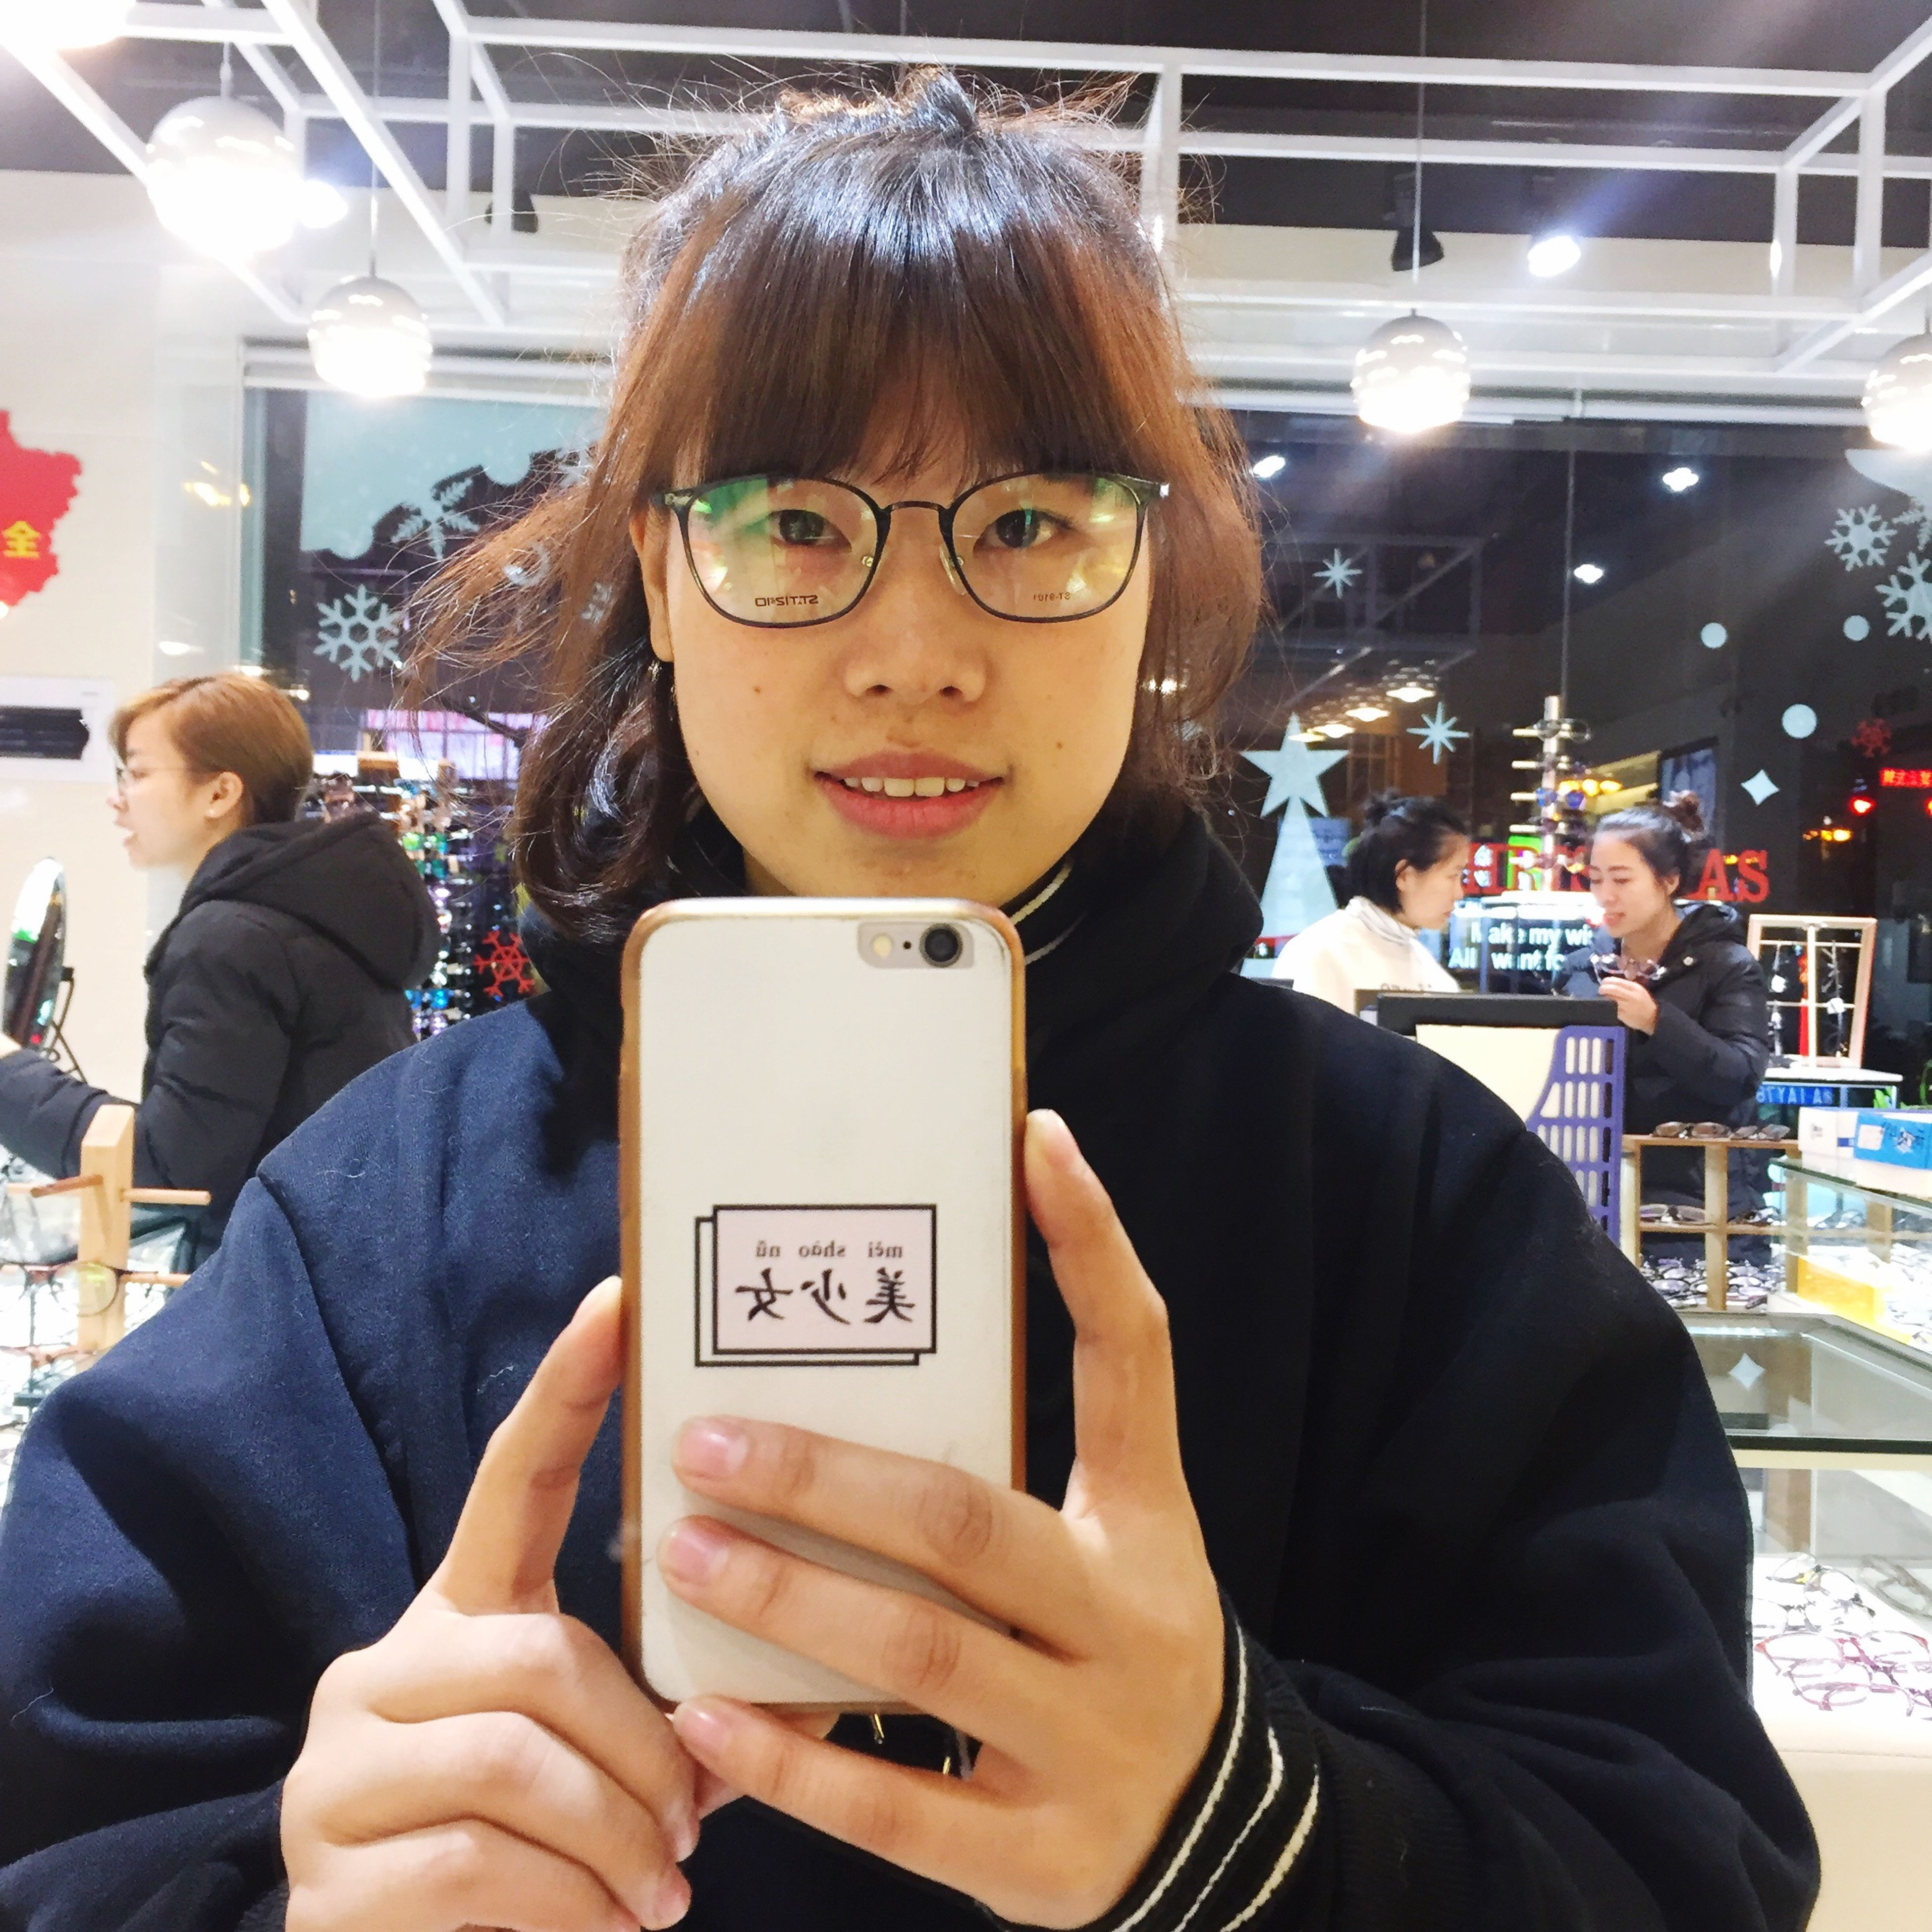 selfie, photo messaging, lifestyles, real people, smart phone, wireless technology, eyeglasses, portable information device, leisure activity, two people, illuminated, indoors, togetherness, close-up, people, day, adult